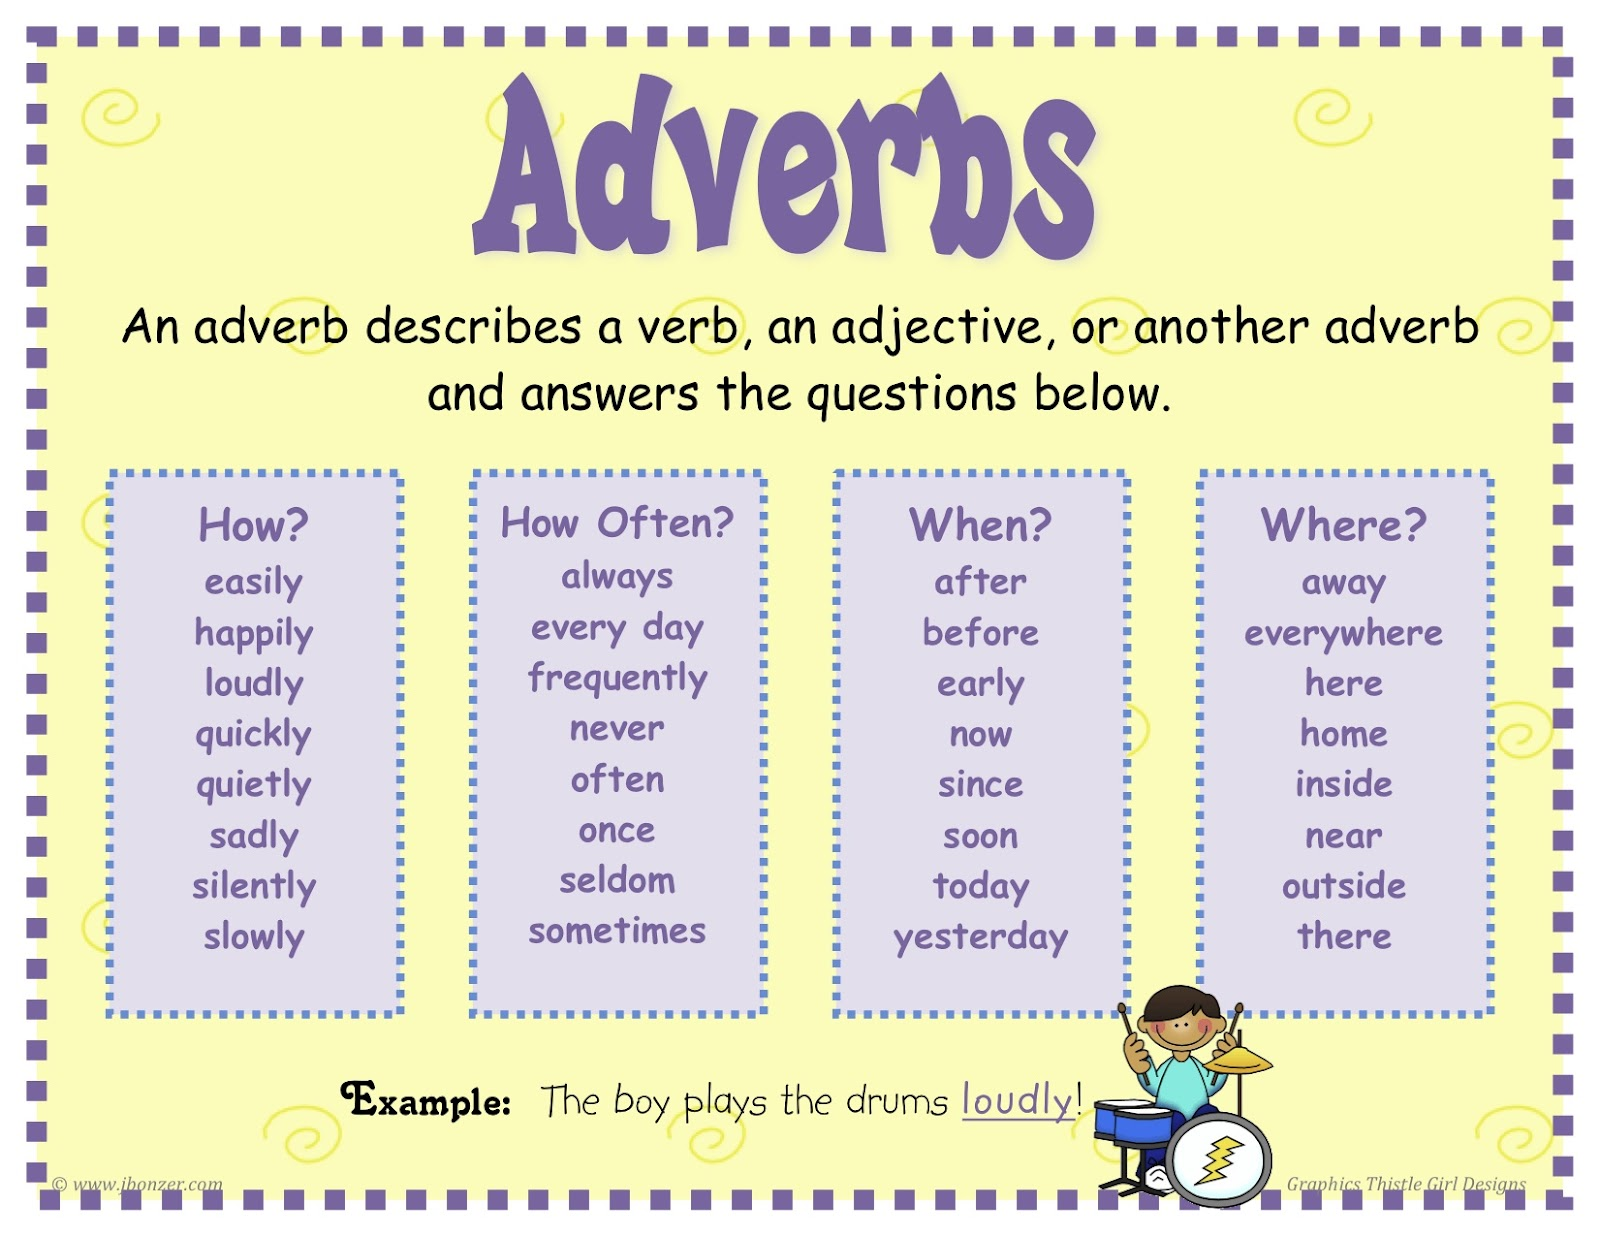 Worksheet List Of Adverbs For Kids worksheet adverb examples for kids mikyu free sasic 4th grade class 2011 2012 more parts of speech adverbs